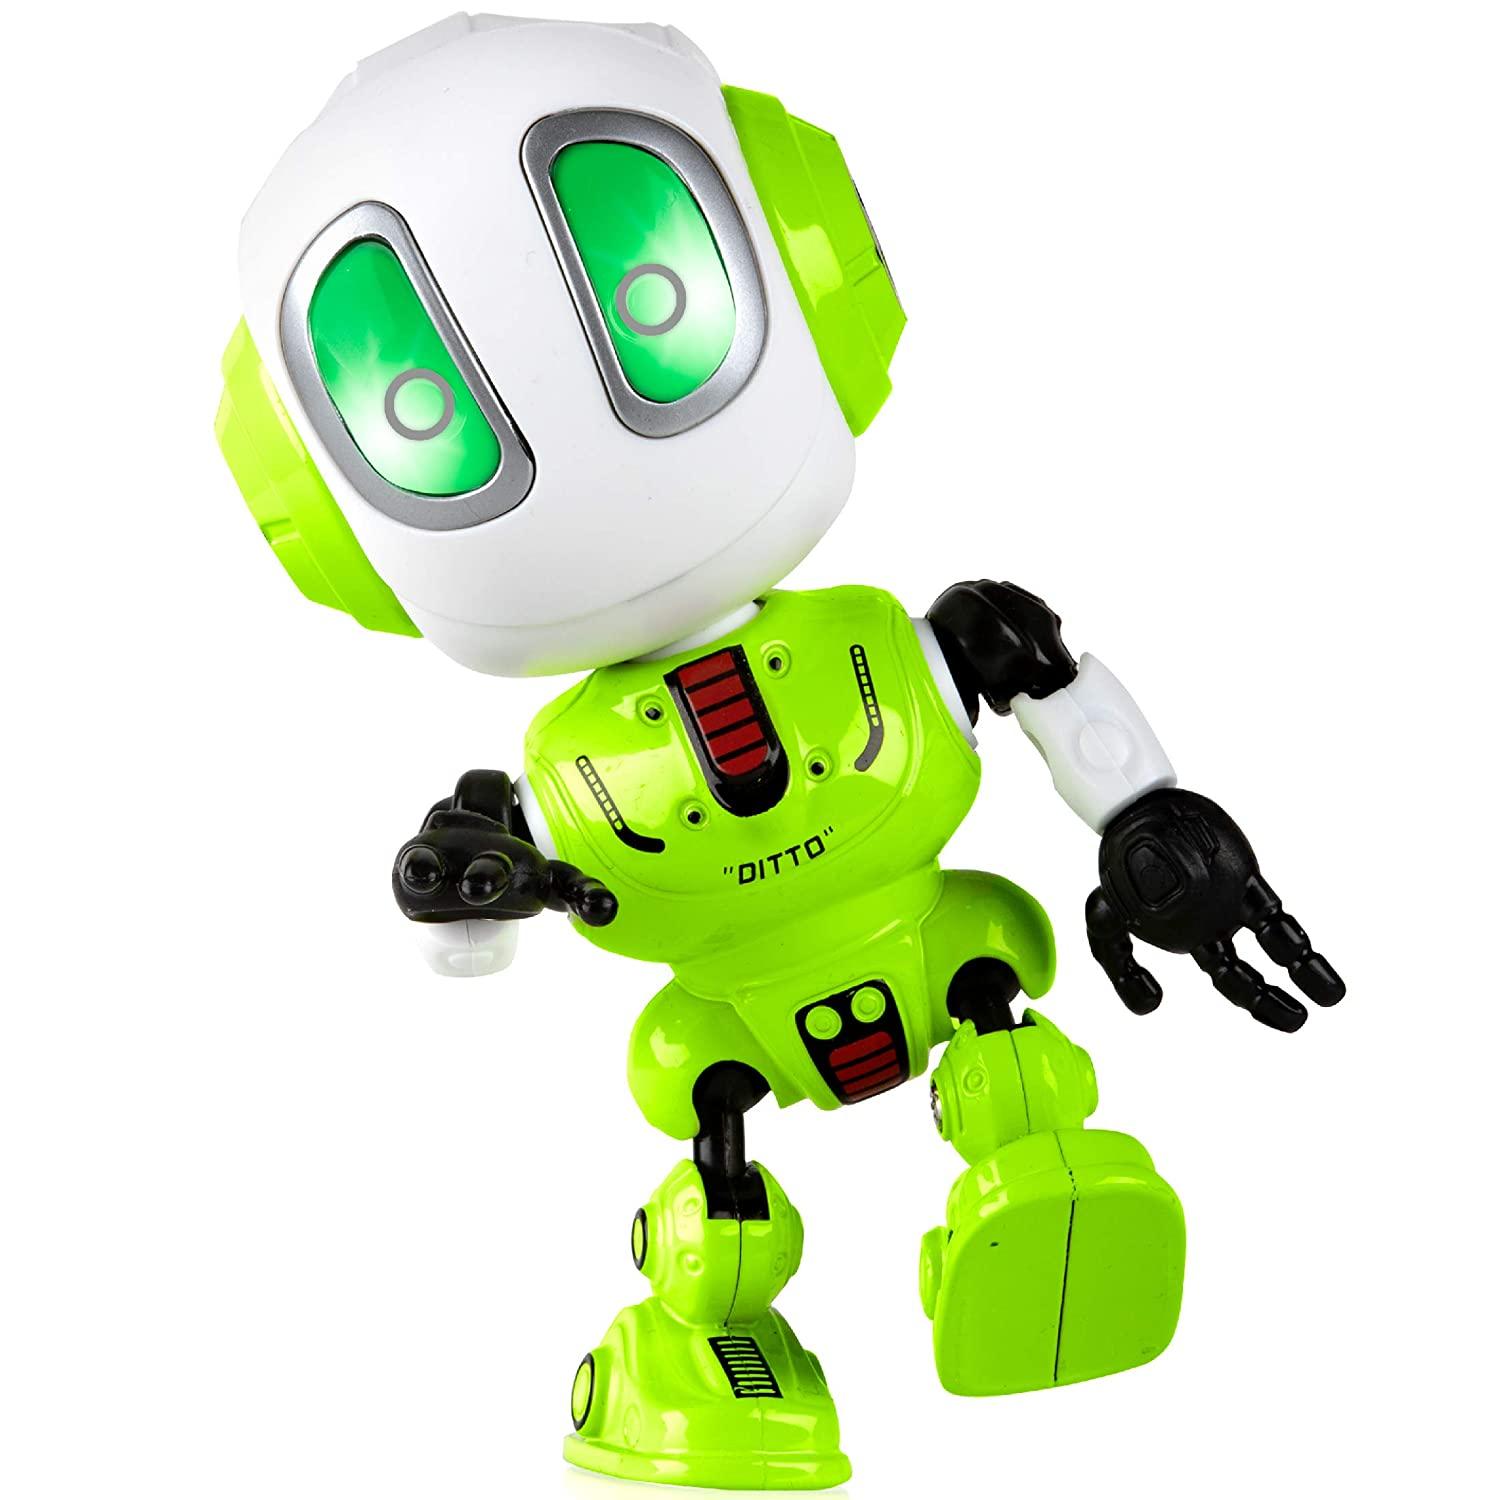 Ditto Mini Talking Robots for Kids w// Posable Body Blue Toy Robots for Boys or Girls Bright LED Toys Interactive Voice Changer Robot Travel Toys